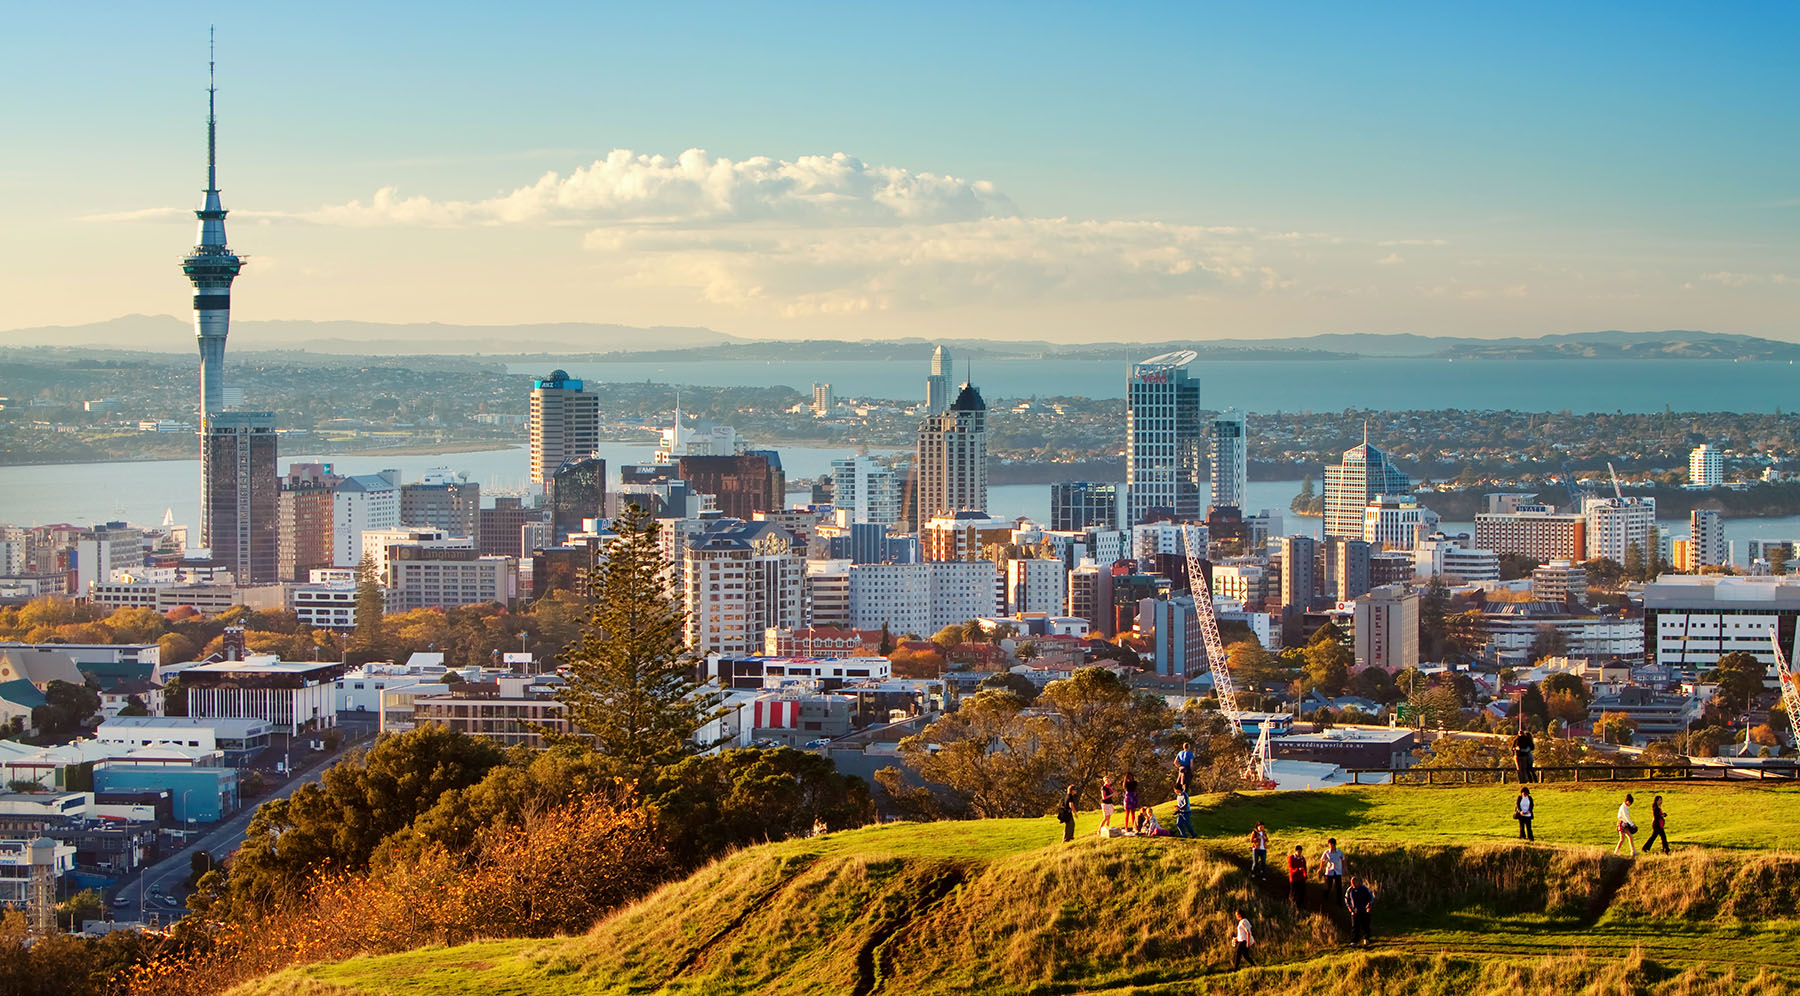 Our Practice - Our teams are based here in New Zealand. We have a strong focus on Auckland and Wellington . However we can assist no matter where you are based.